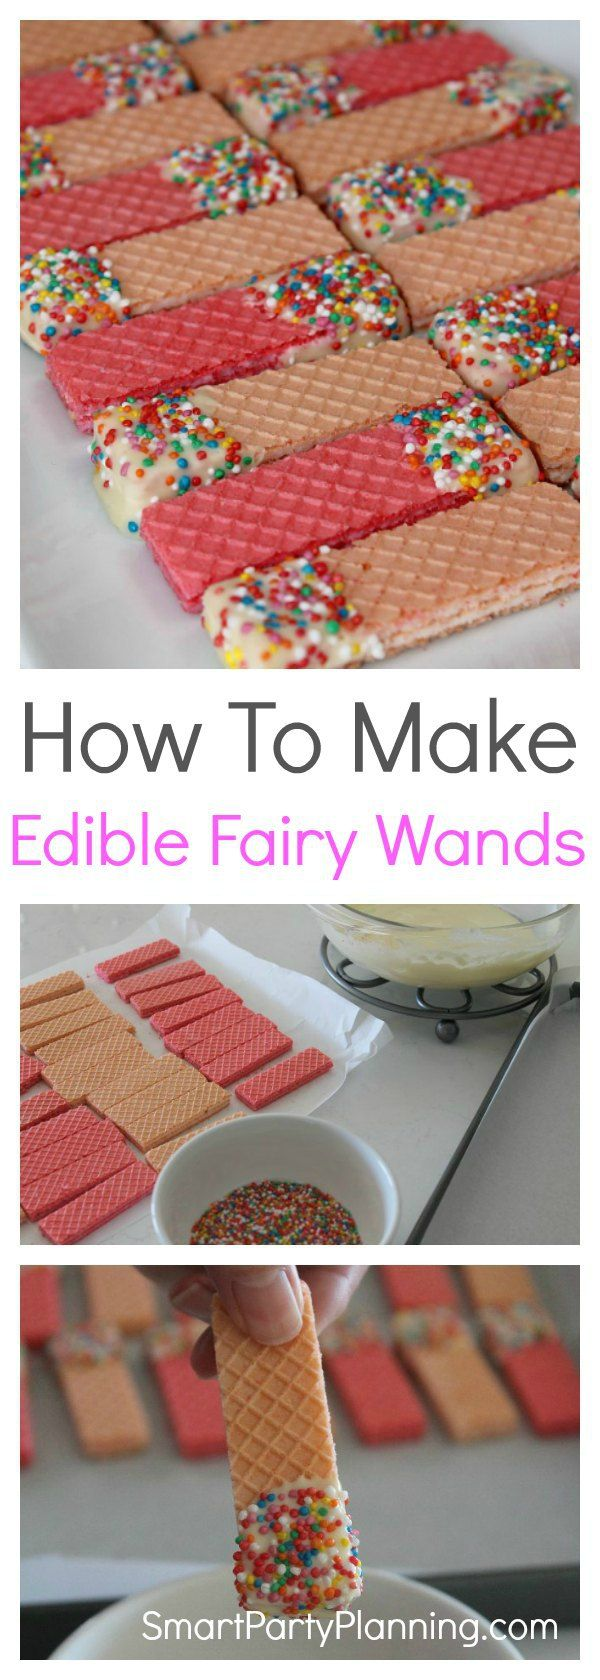 How To Make Easy Edible Fairy Wands